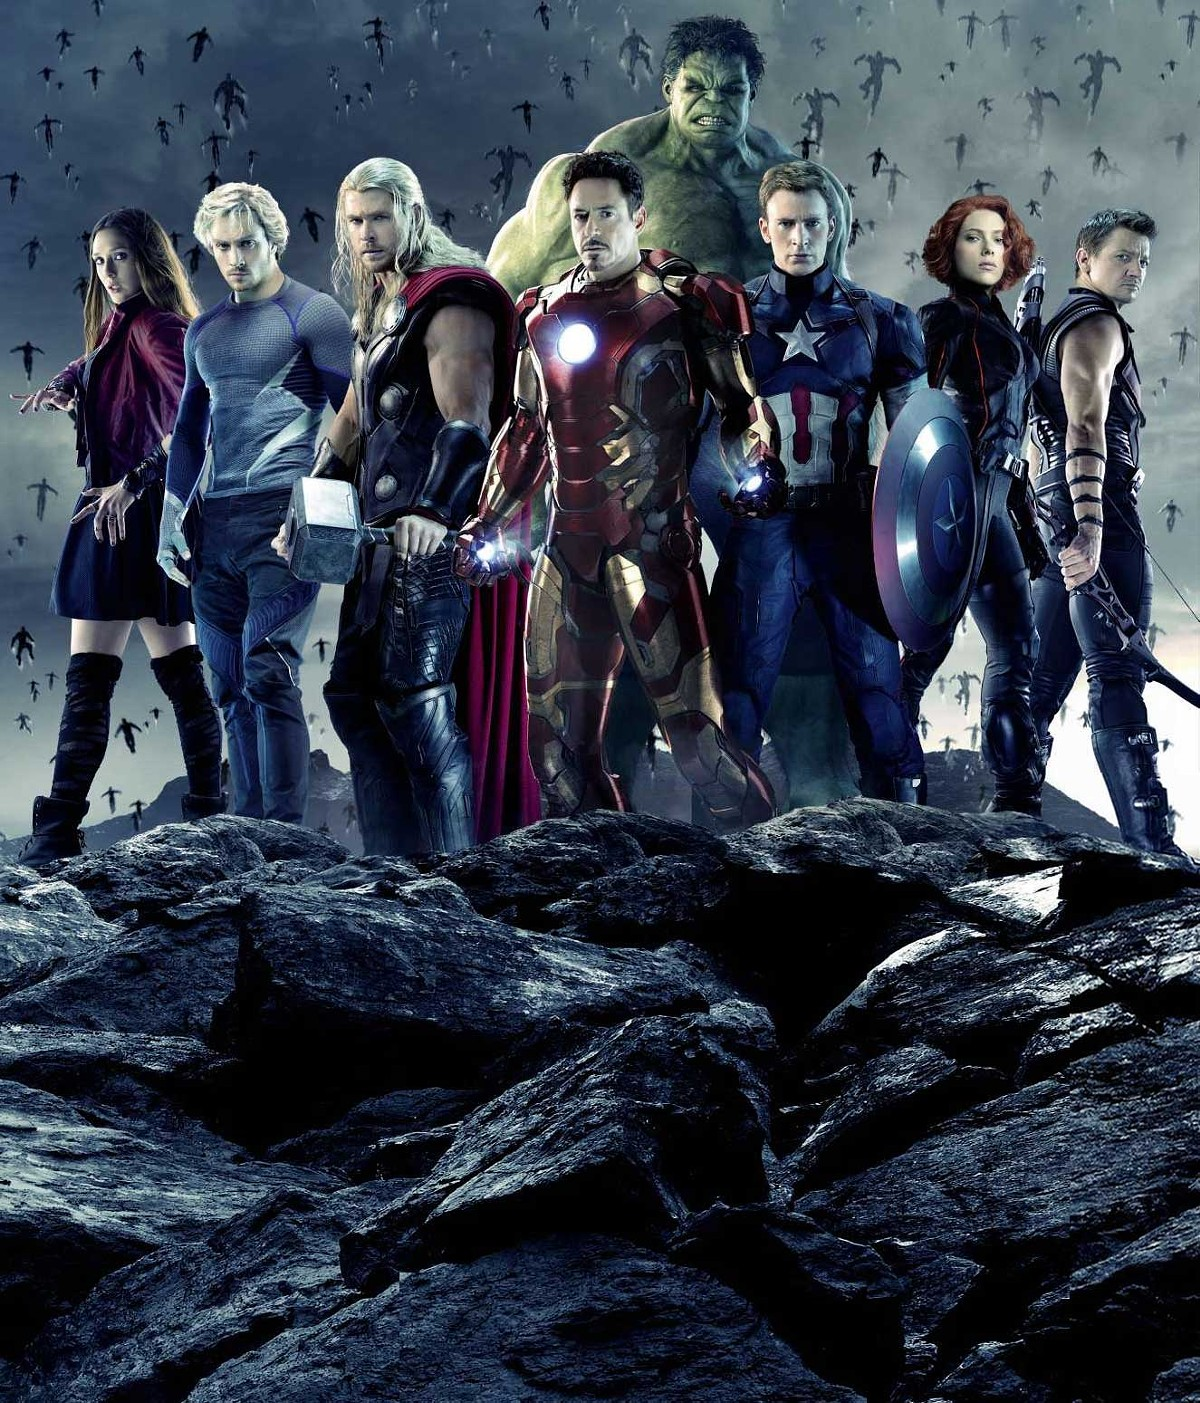 avengers-2-age-of-ultron-full-team-all-characters.jpg